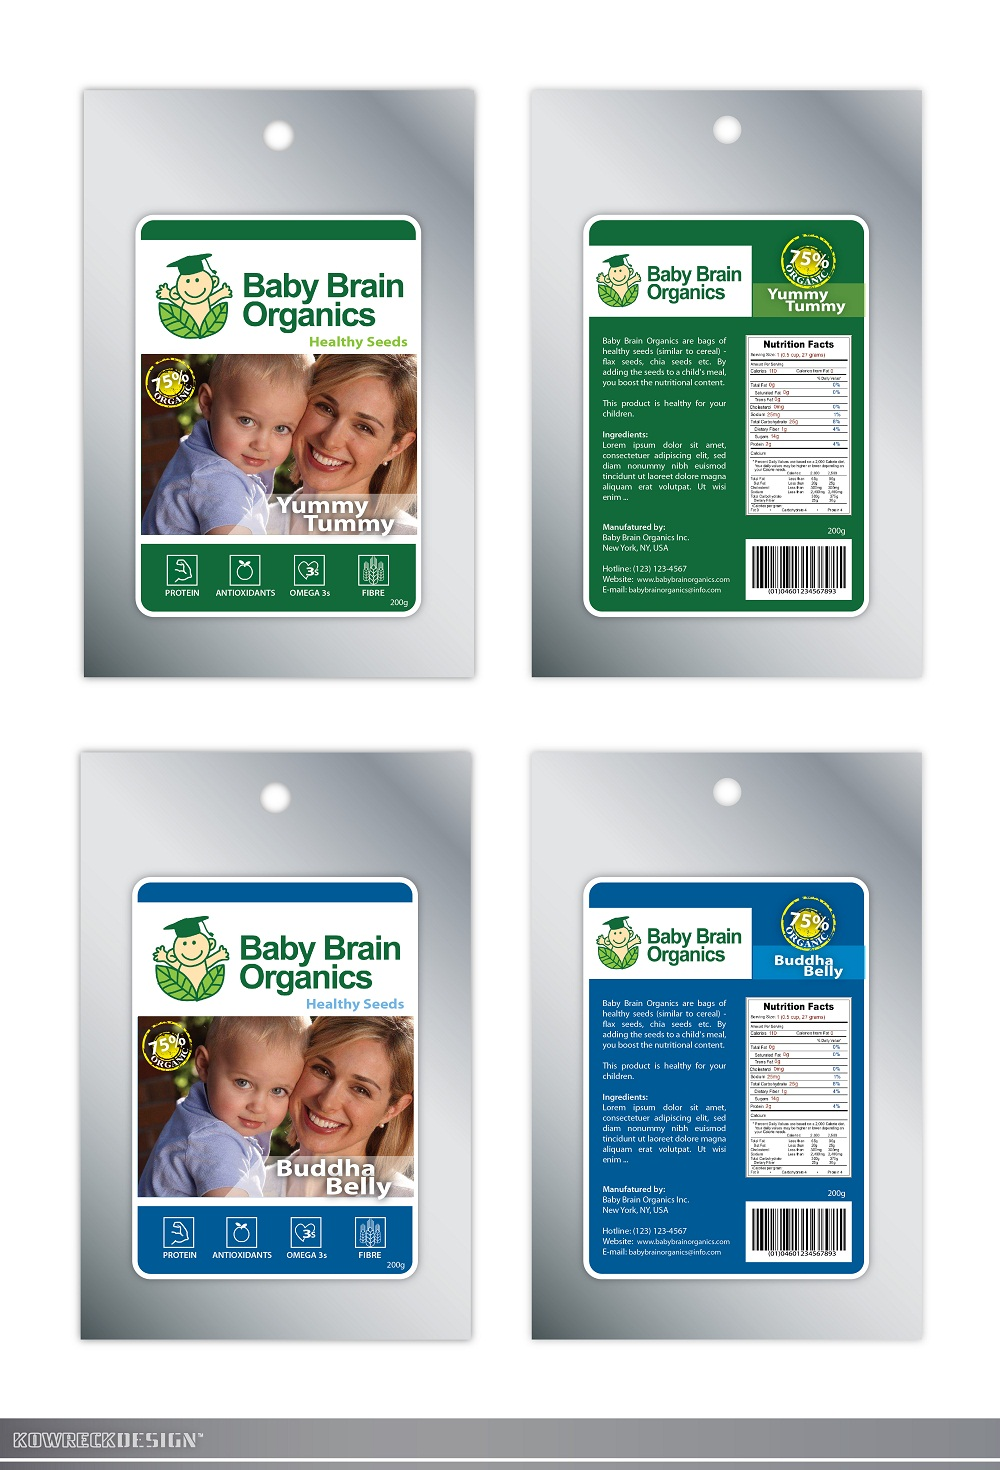 Packaging Design by kowreck - Entry No. 93 in the Packaging Design Contest Baby Brain Organics Packaging Design.